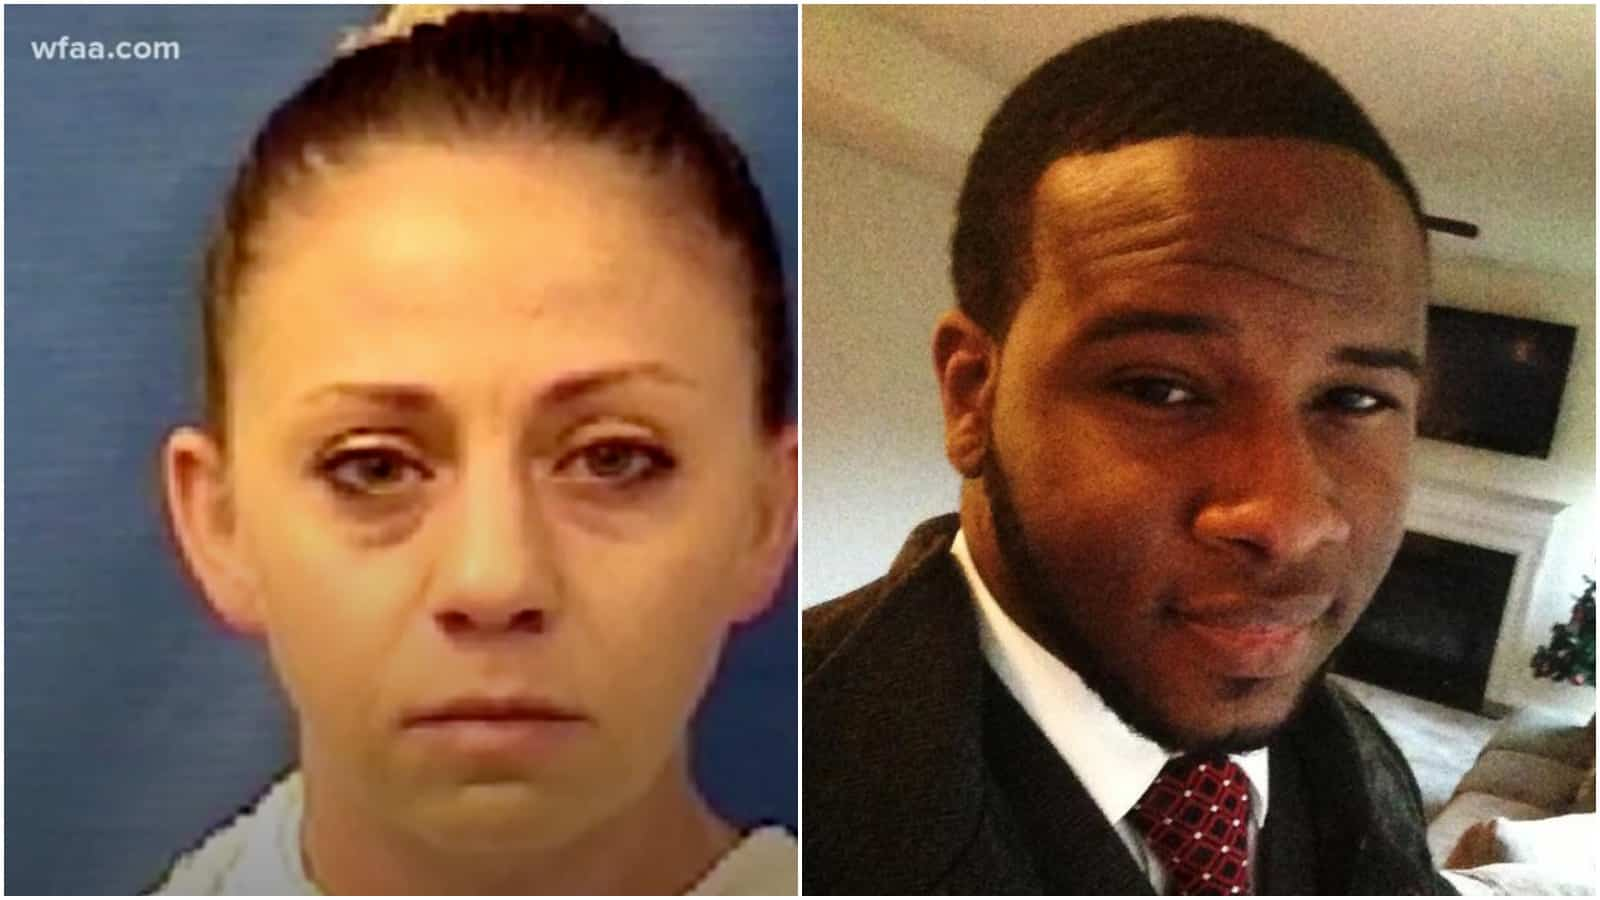 Botham Jean, Amber Guyger, Texas, police shootings